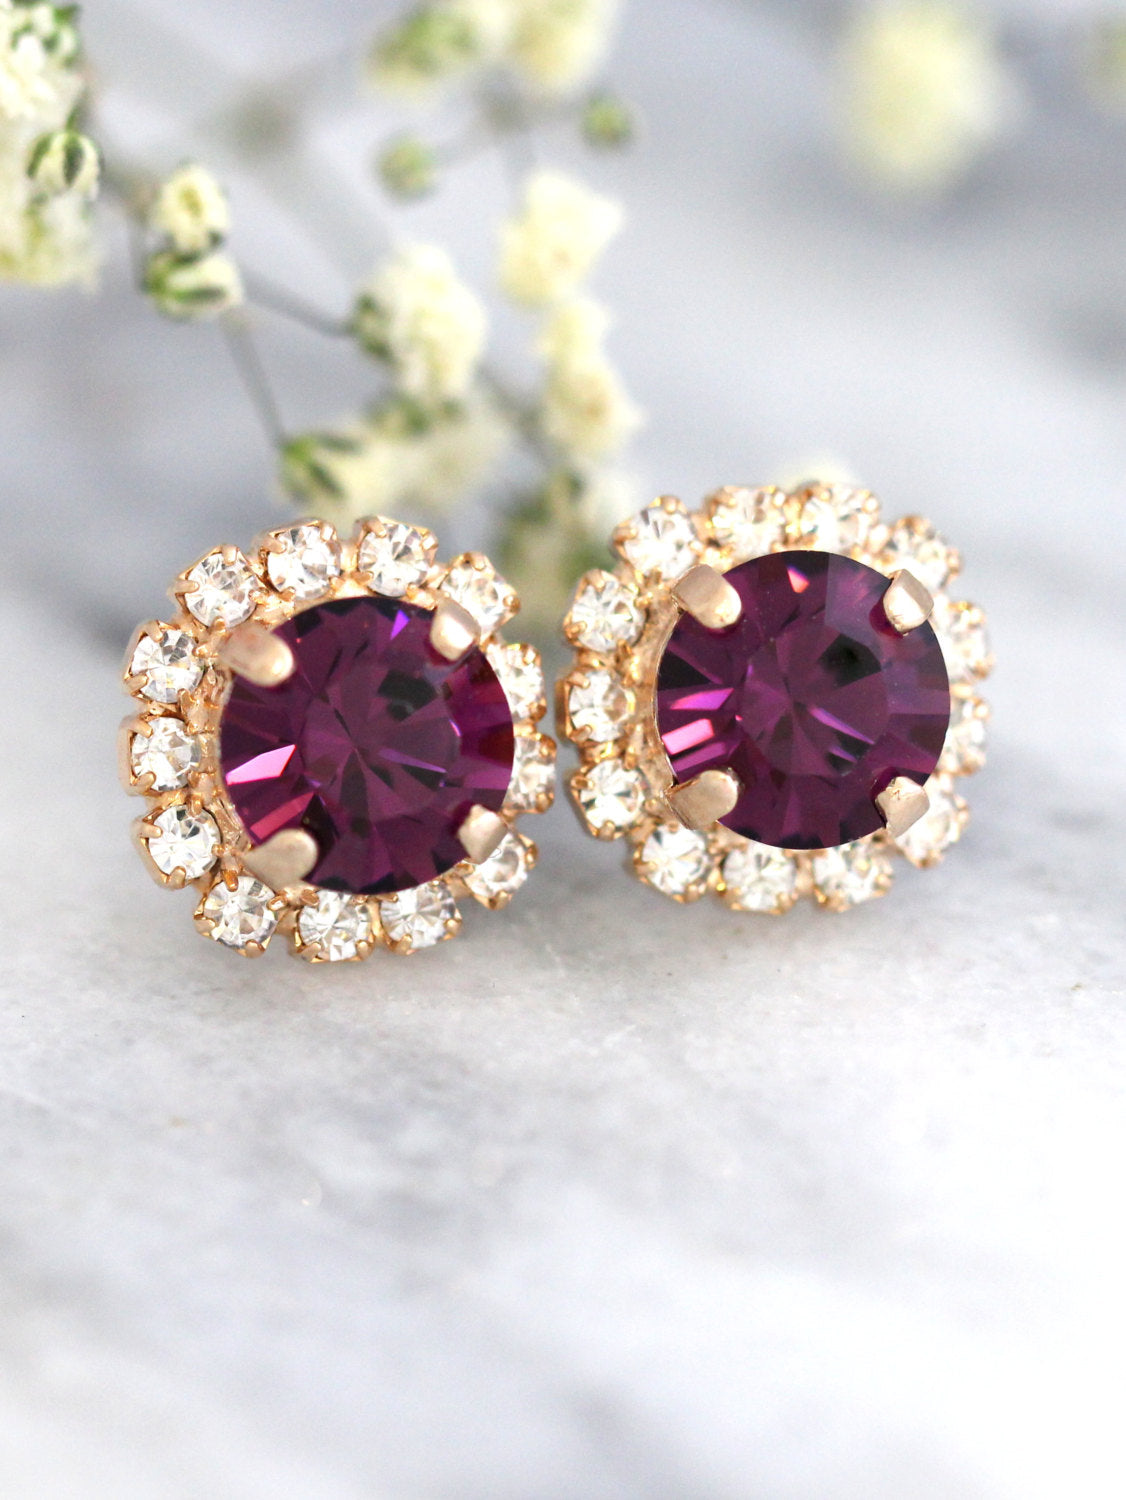 Jenny Purple Crystal Swarovski Stud Earrings